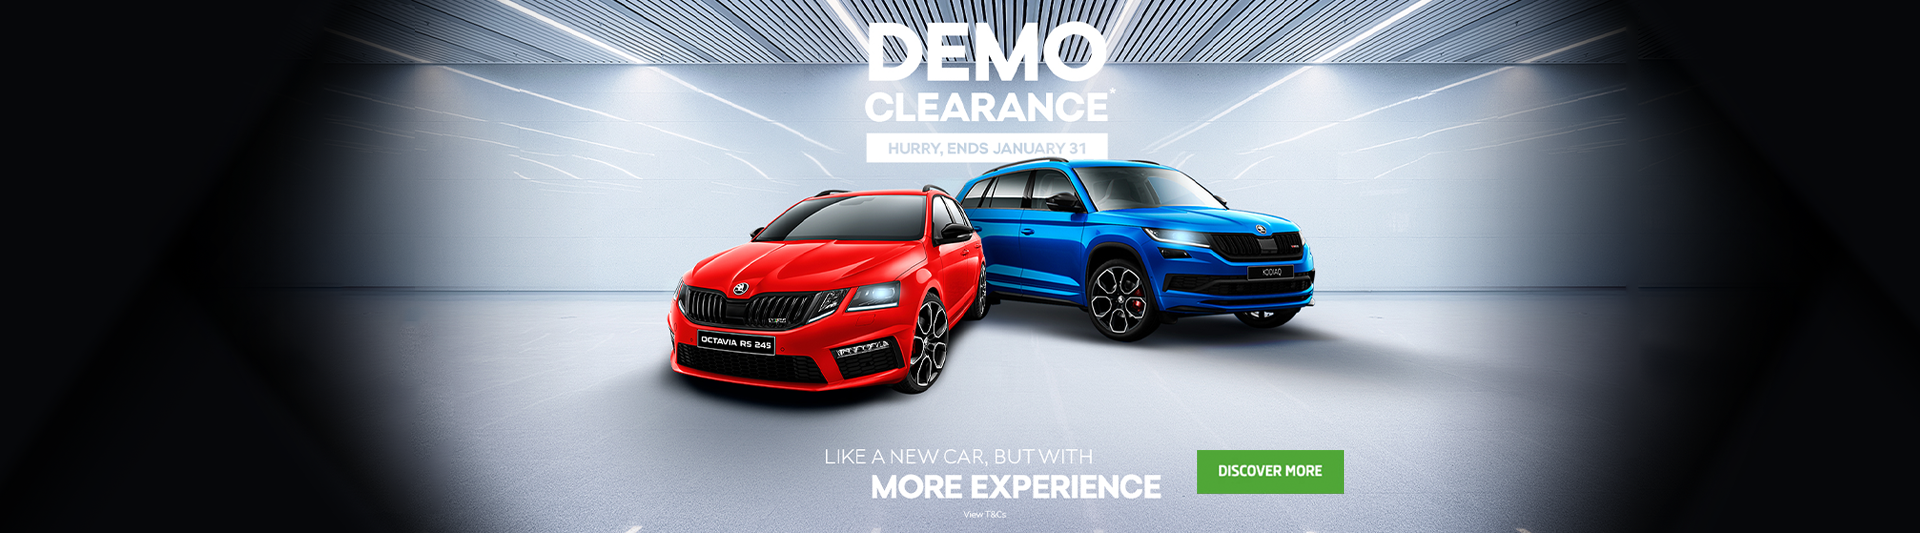 Demo Clearance - Hurry, ends January 31